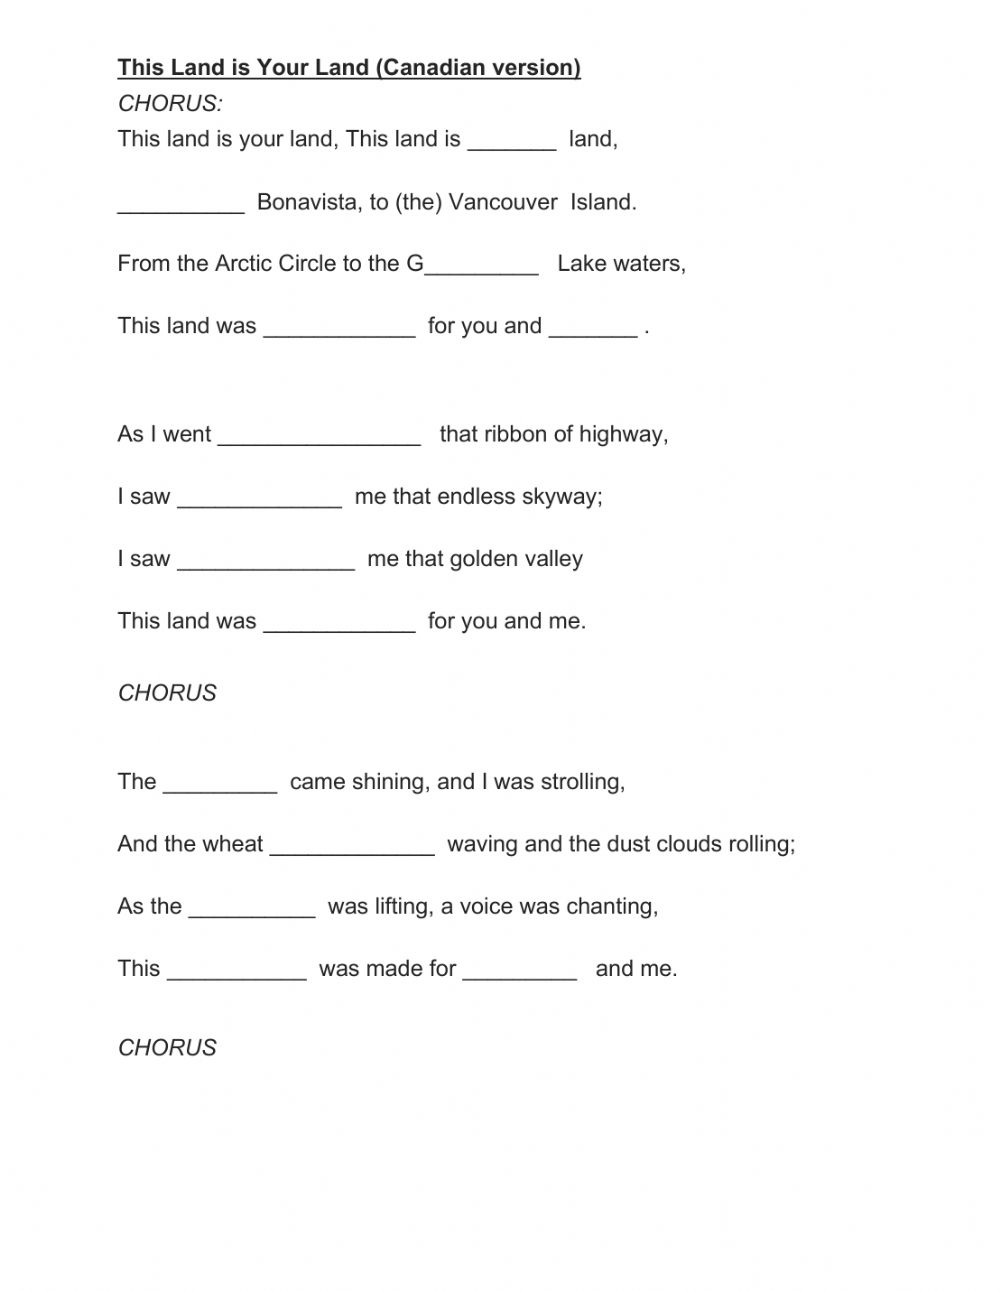 medium resolution of This Land is Your Land (Canadian version) worksheet